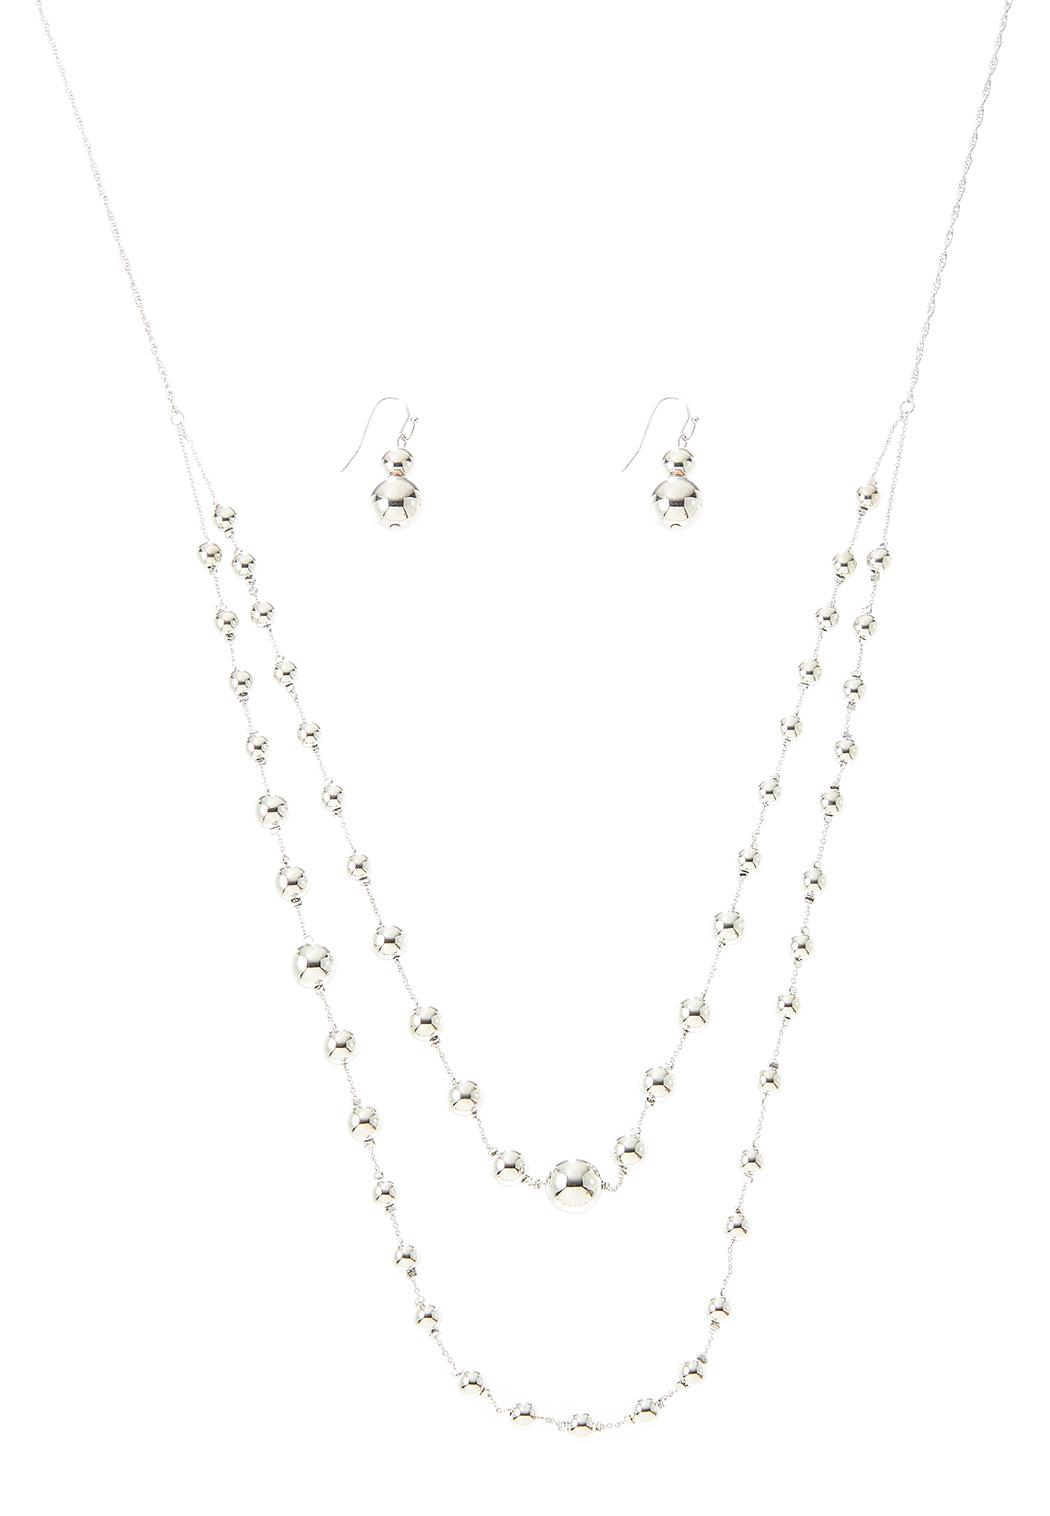 Layered Bead Necklace Earring Set